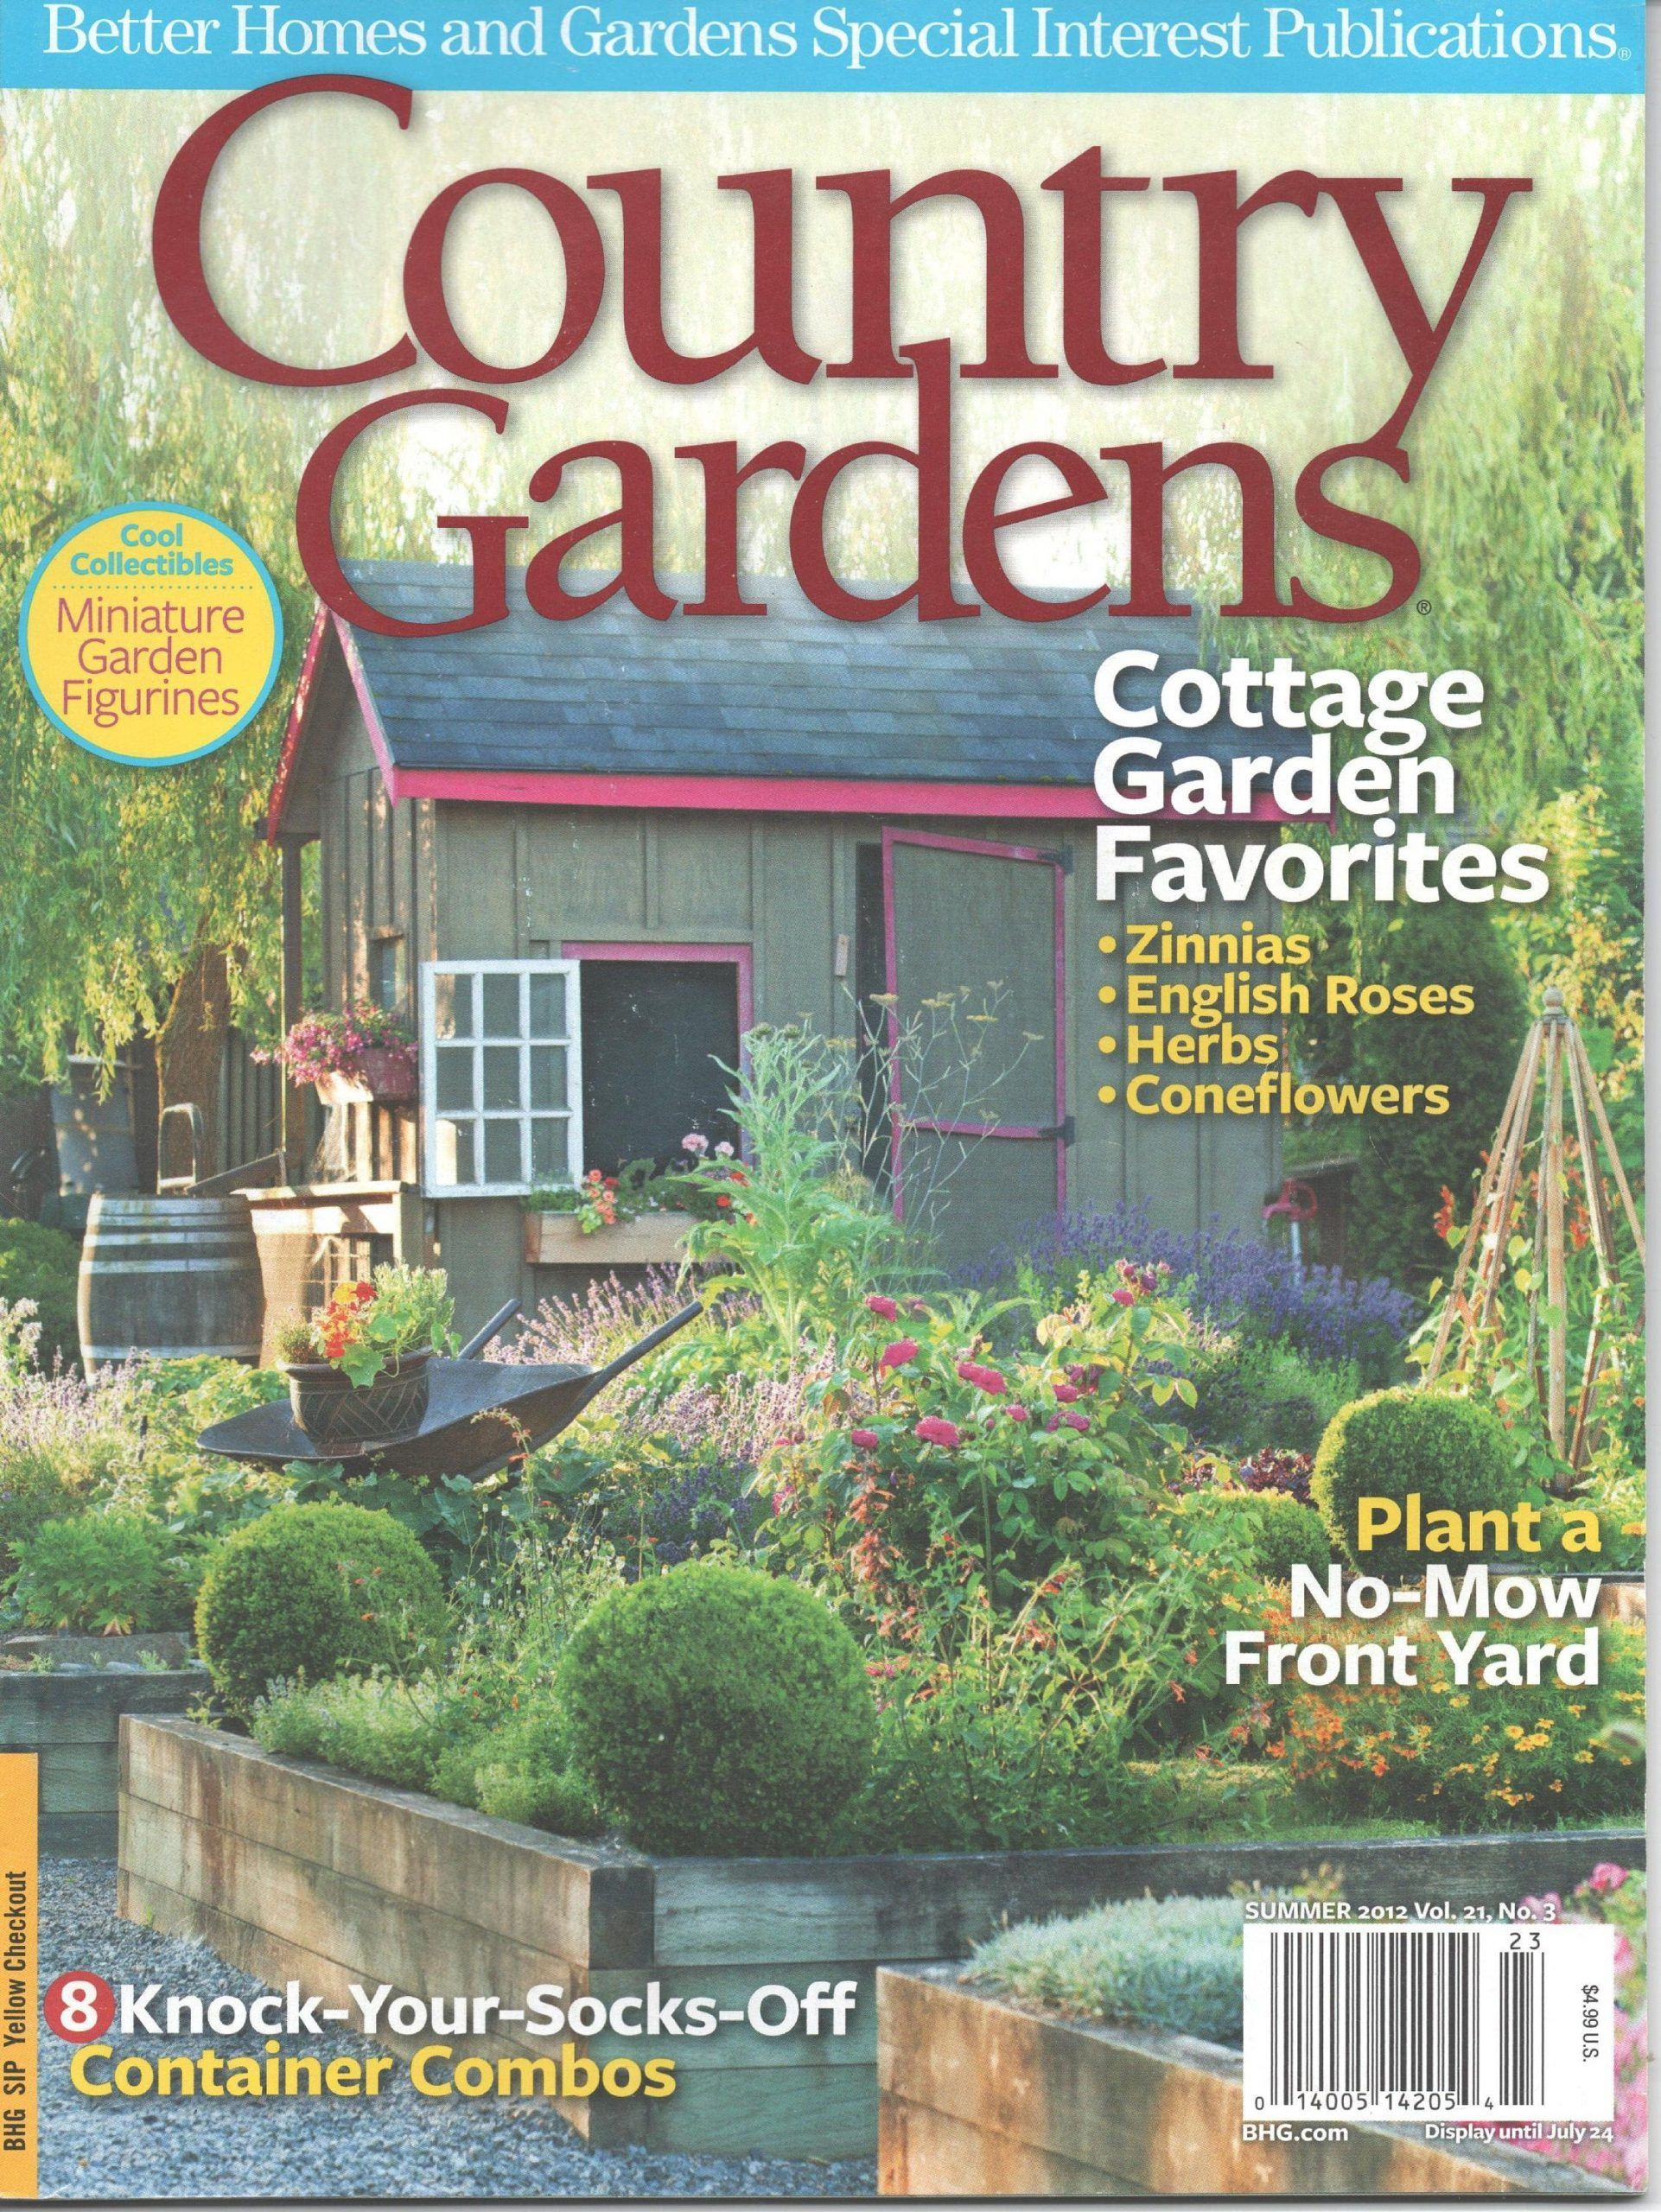 69a63142c67e5f25f4438cddd1d6d9d1 - Better Homes And Gardens Special Interest Publications